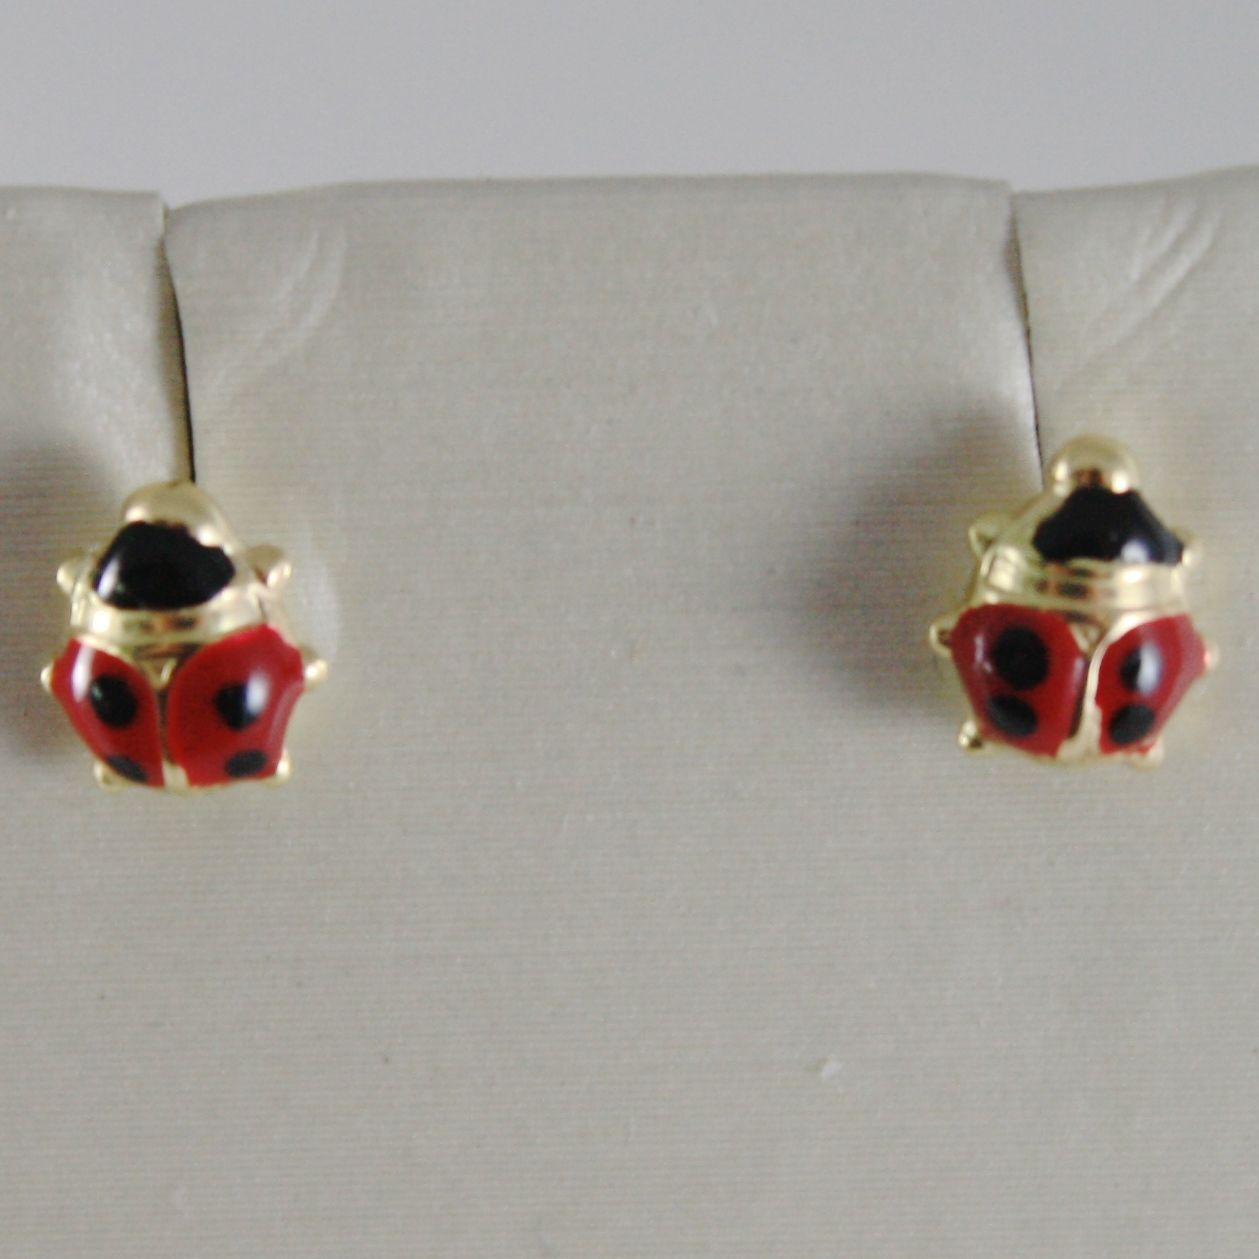 18K YELLOW GOLD EARRINGS MINI 5MM GLAZED LADYBIRD LADYBUG FOR KIDS MADE IN ITALY